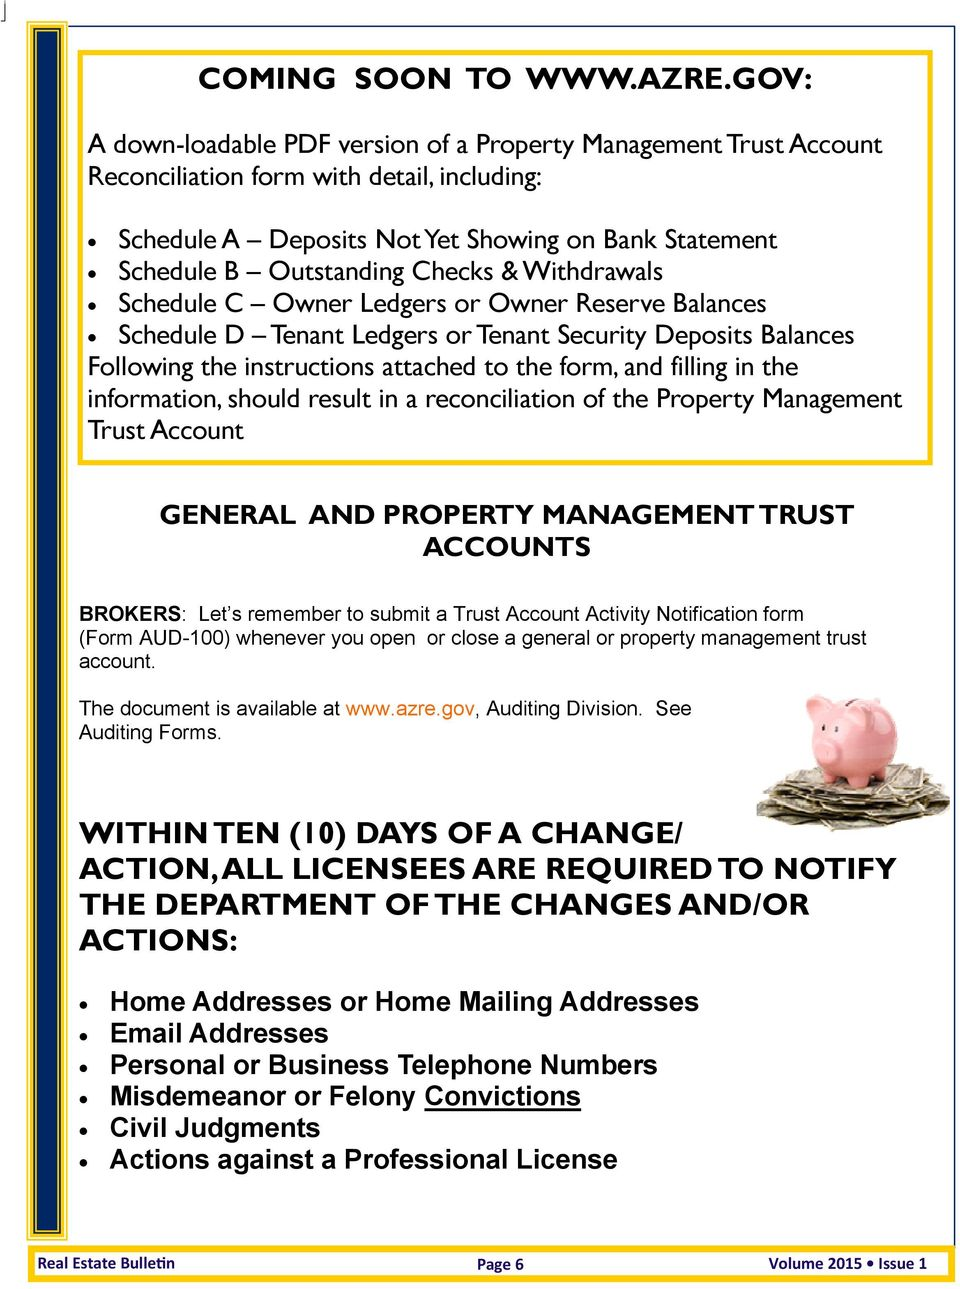 & Withdrawals Schedule C Owner Ledgers or Owner Reserve Balances Schedule D Tenant Ledgers or Tenant Security Deposits Balances Following the instructions attached to the form, and filling in the